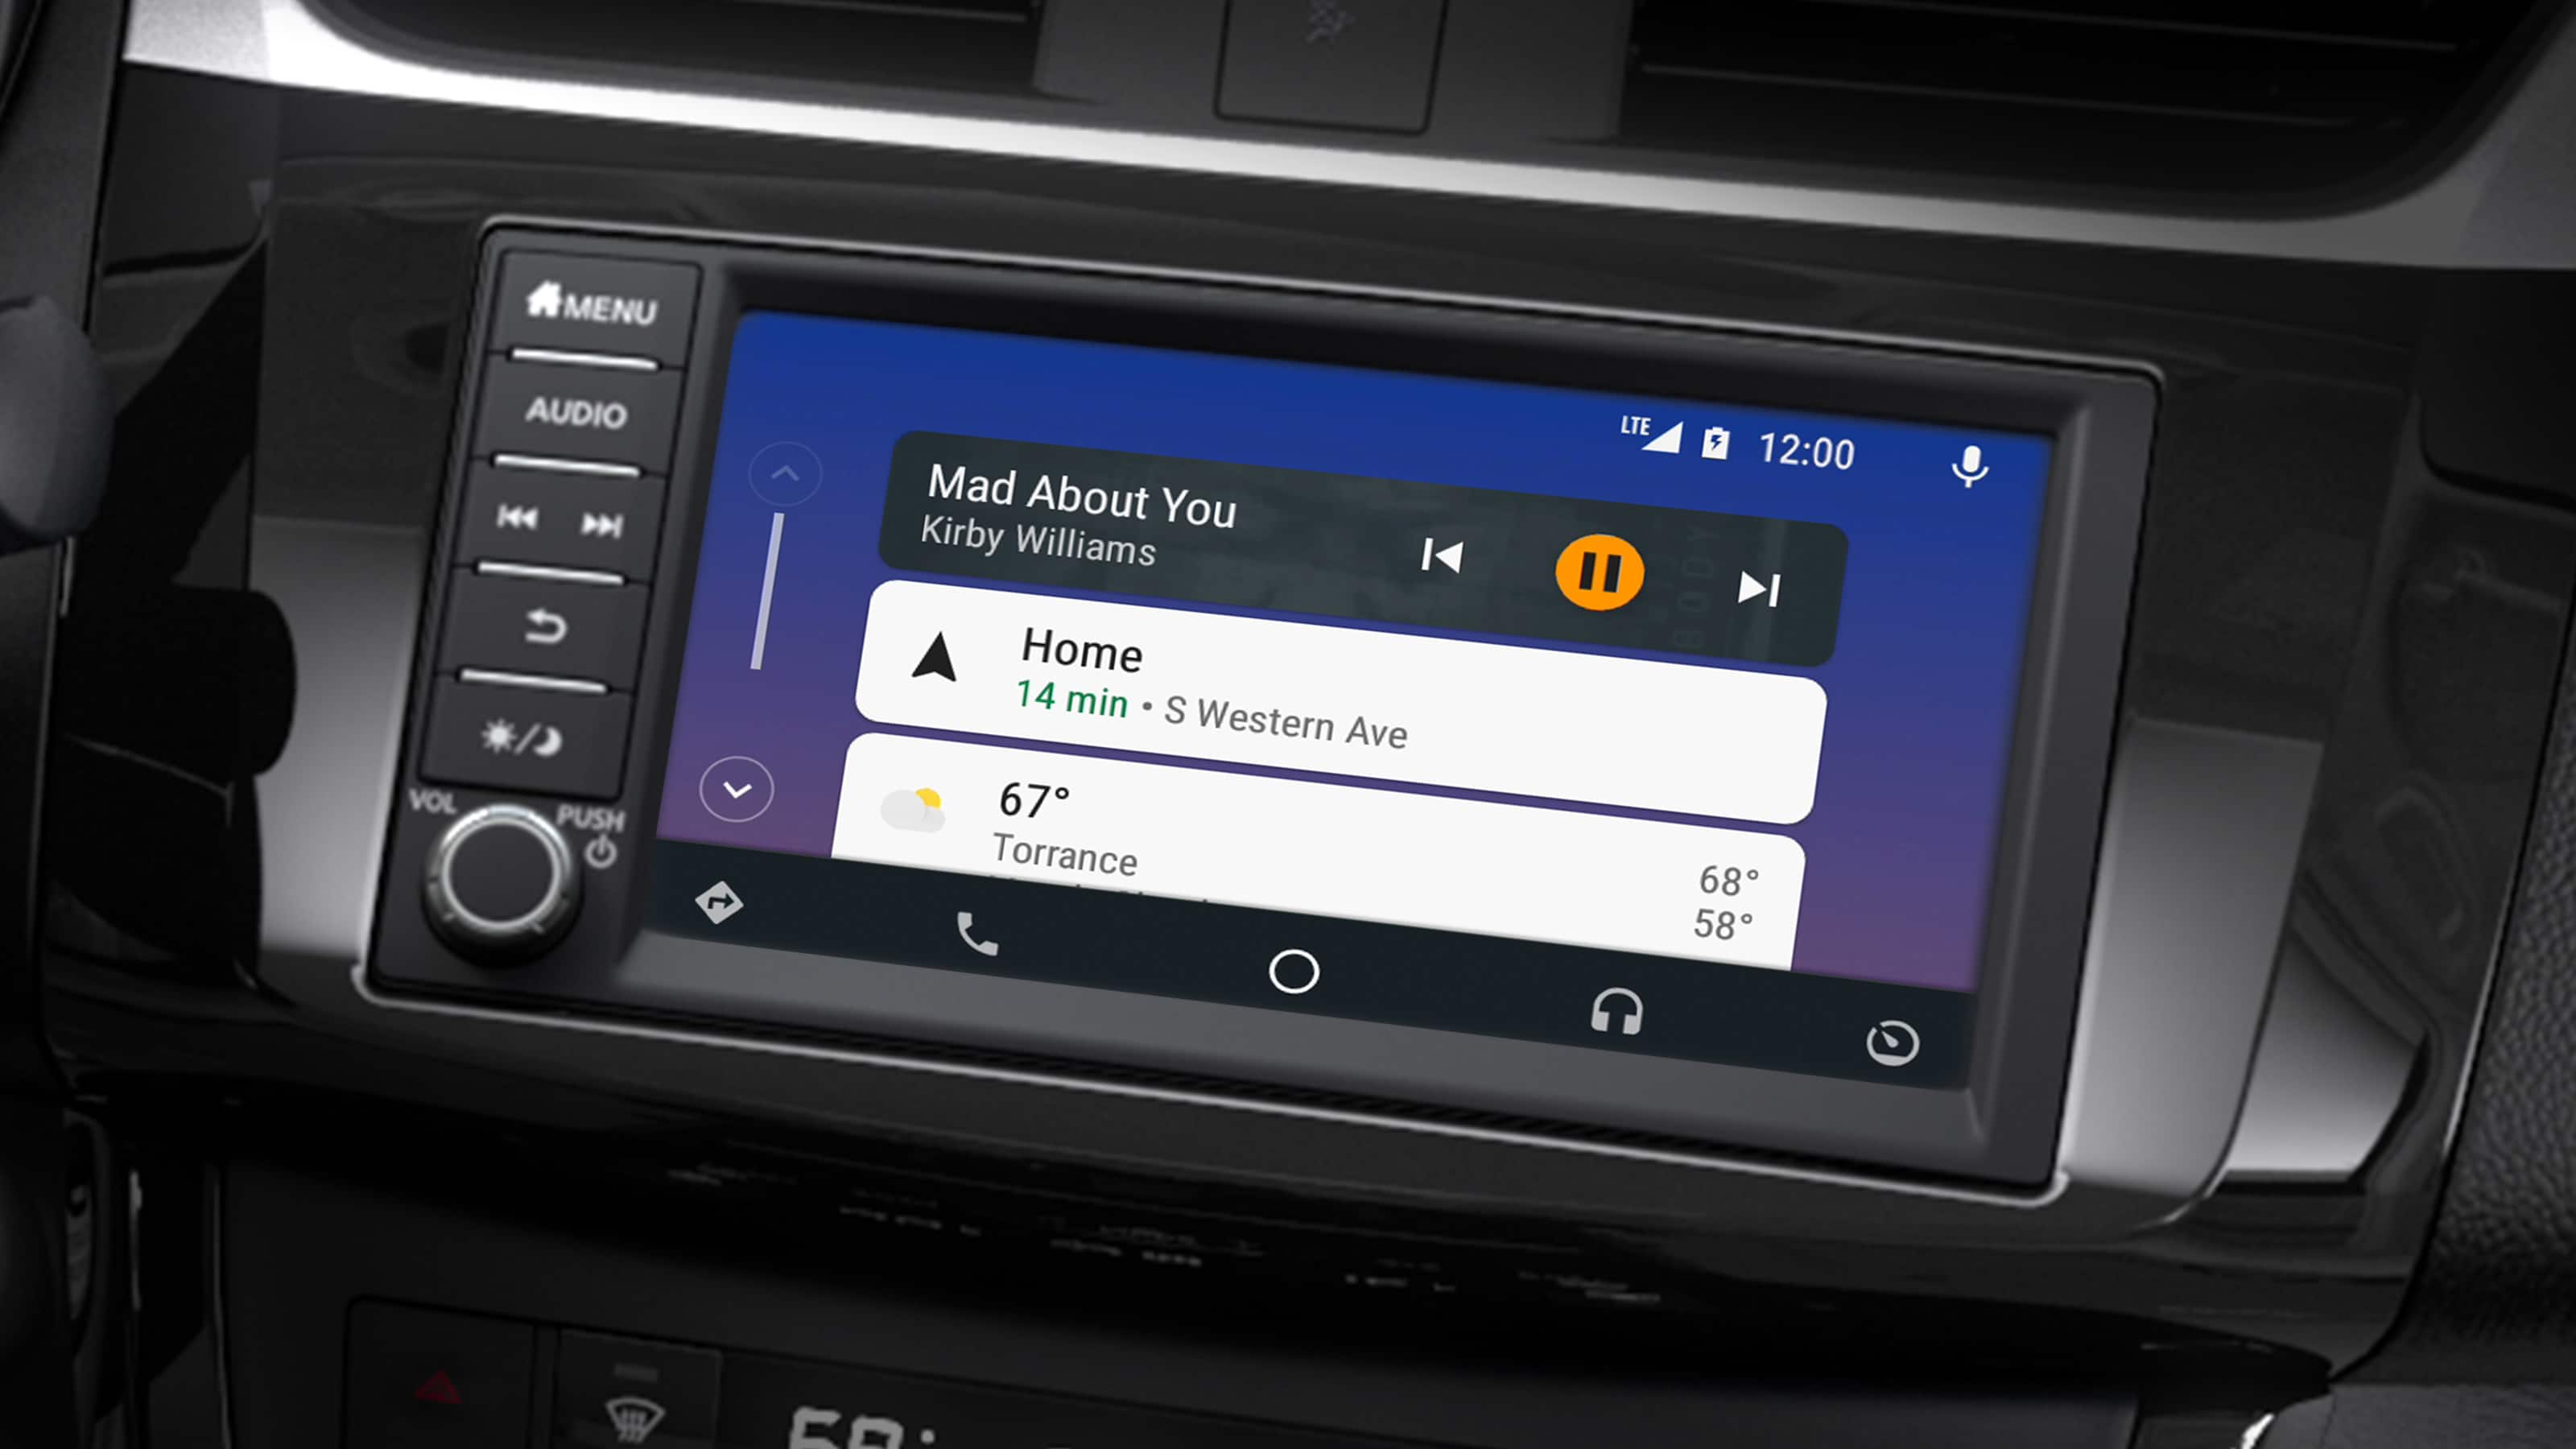 Touchscreen Display in the 2019 Nissan Sentra